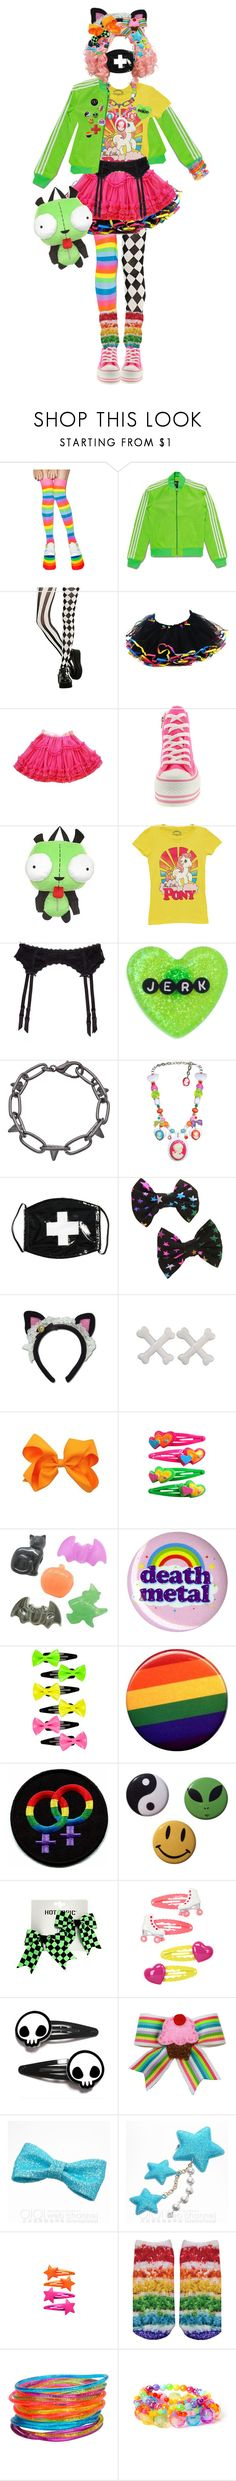 """owo wats this............"" by pinkiecore ❤ liked on Polyvore featuring Leg Avenue, adidas Originals, Hot Topic, My Little Pony, Hanky Panky, Sourpuss, Blu Bijoux, Tarina Tarantino, GE and Kreepsville 666"